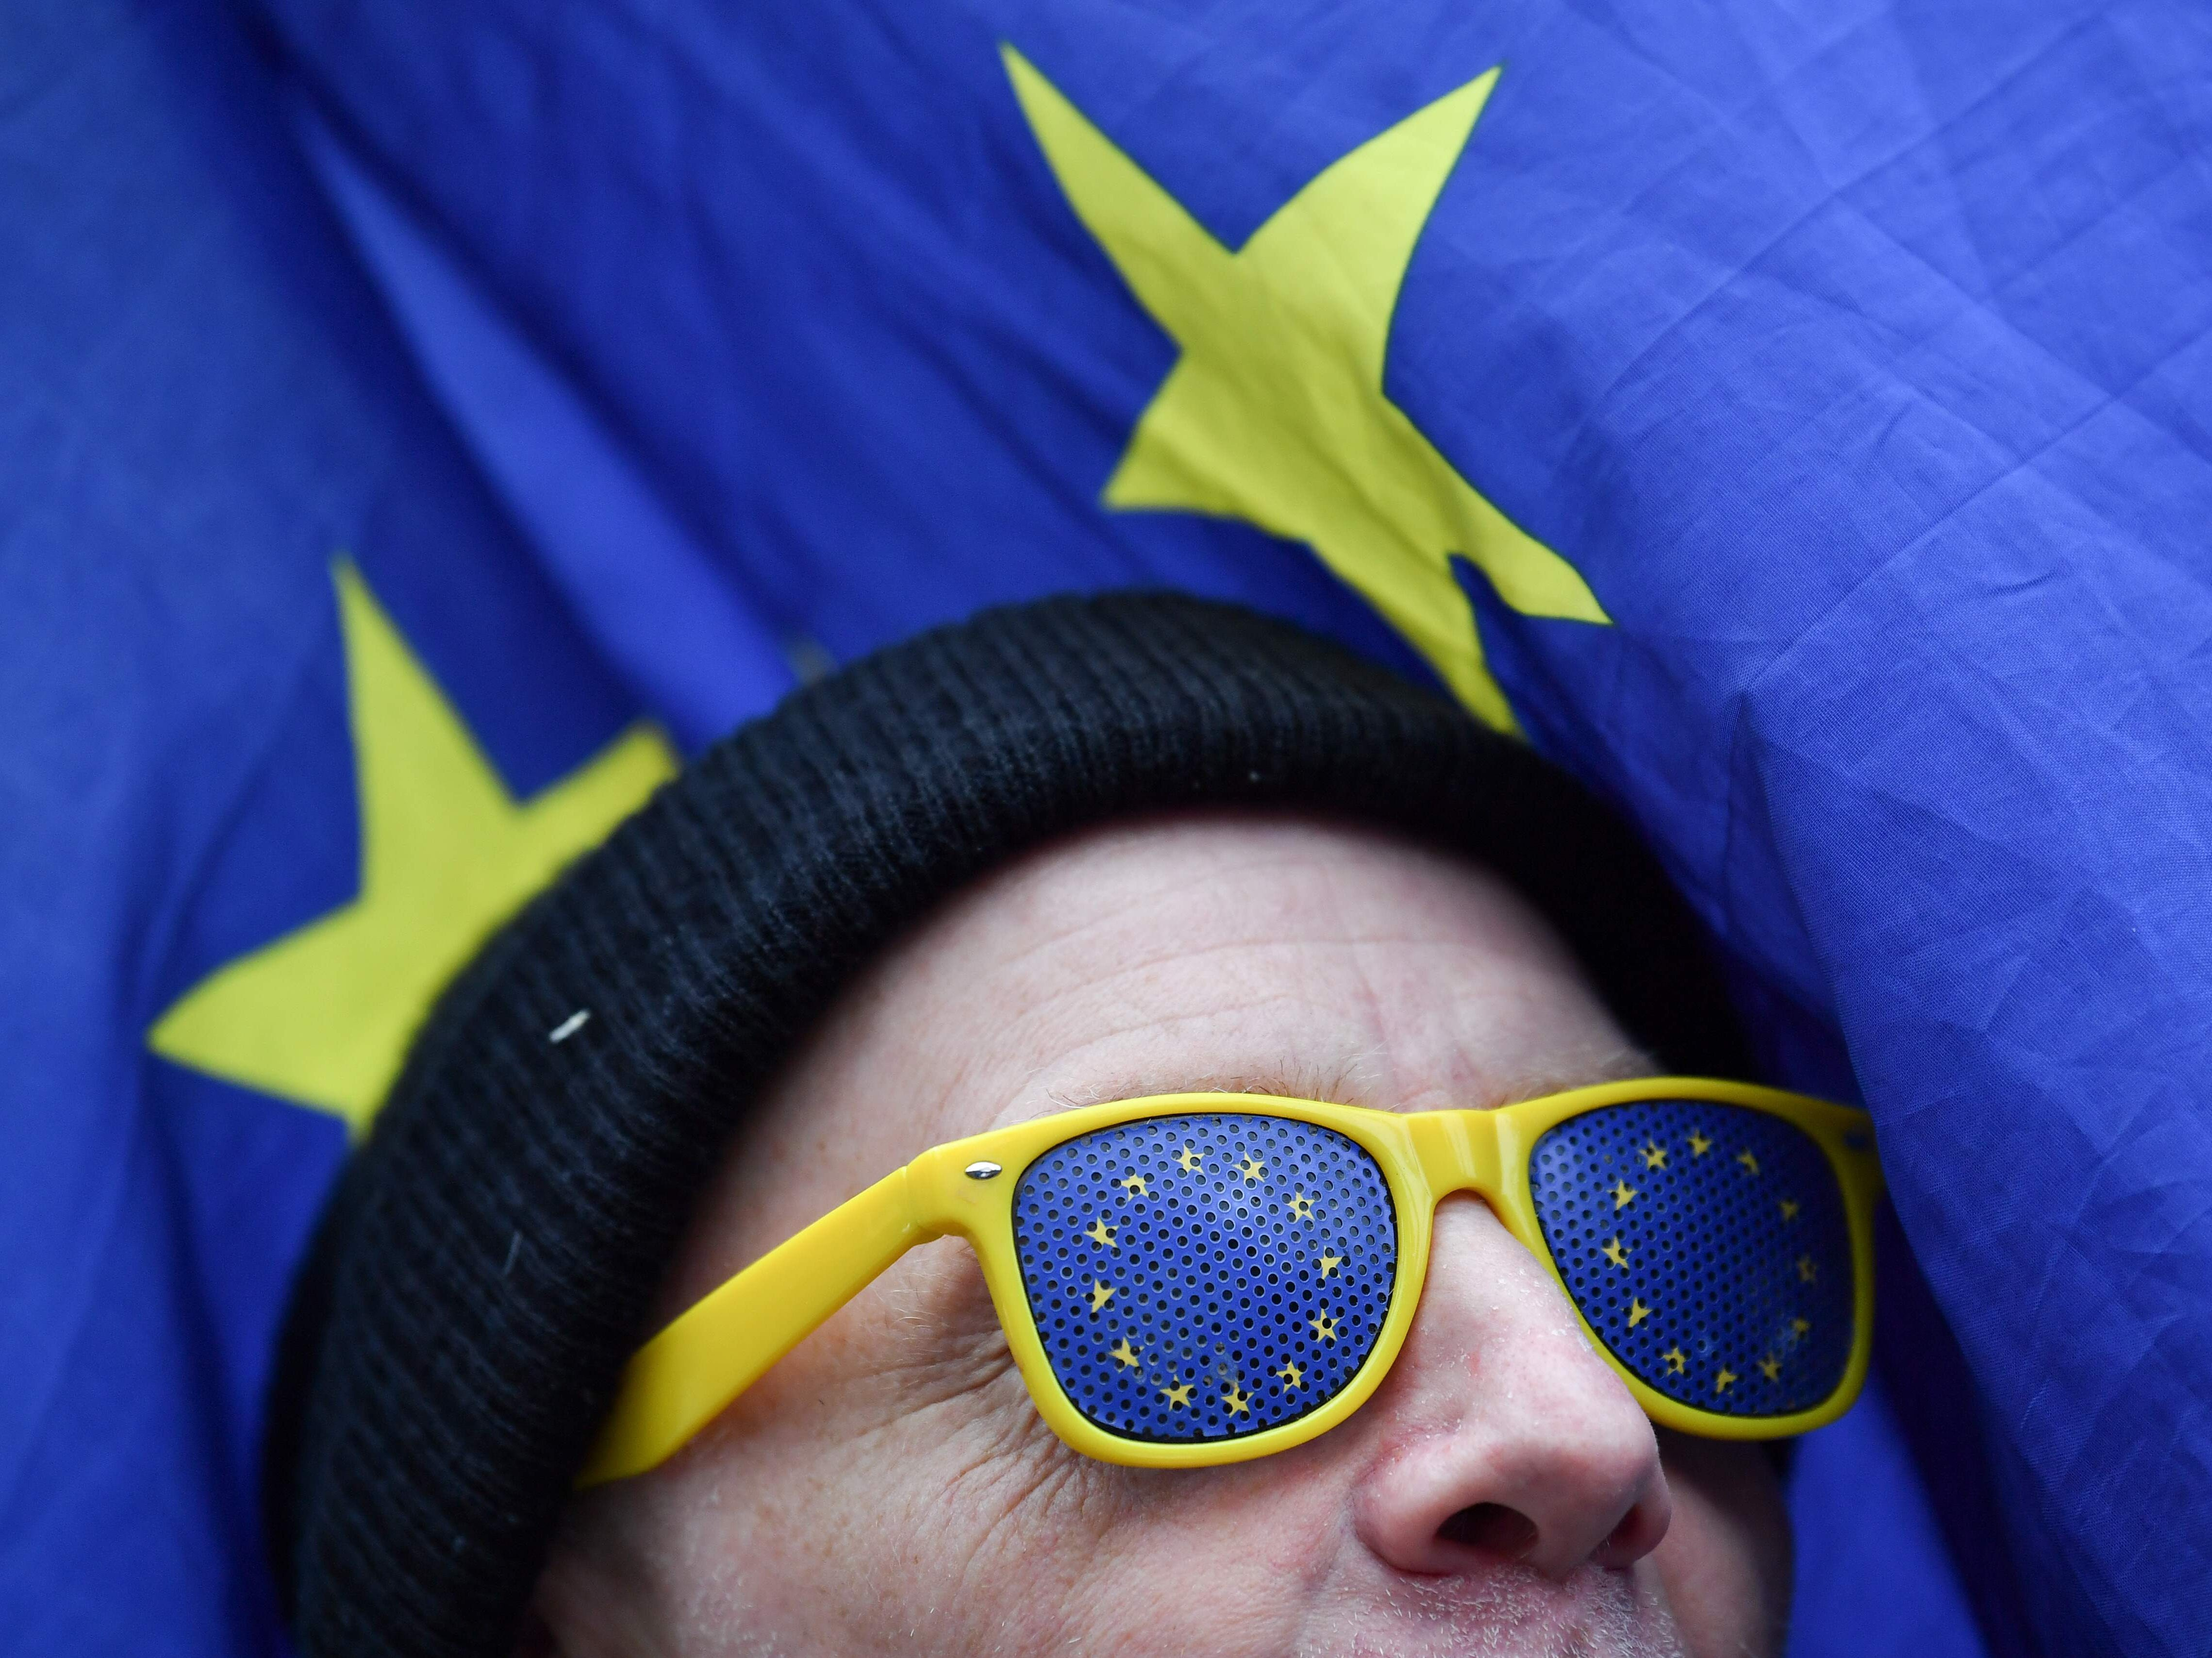 """An anti-Brexit protester is seen wearing glasses with EU flag motifs with an EU flag in the background outside the Houses of Parliament in London on Jan. 10, 2019. Britain's business minister on Thursday warned that the prospect of crashing out of the European Union without an agreement would be """"disastrous"""" for the country, as fractious MPs prepare to vote on a contentious Brexit deal."""